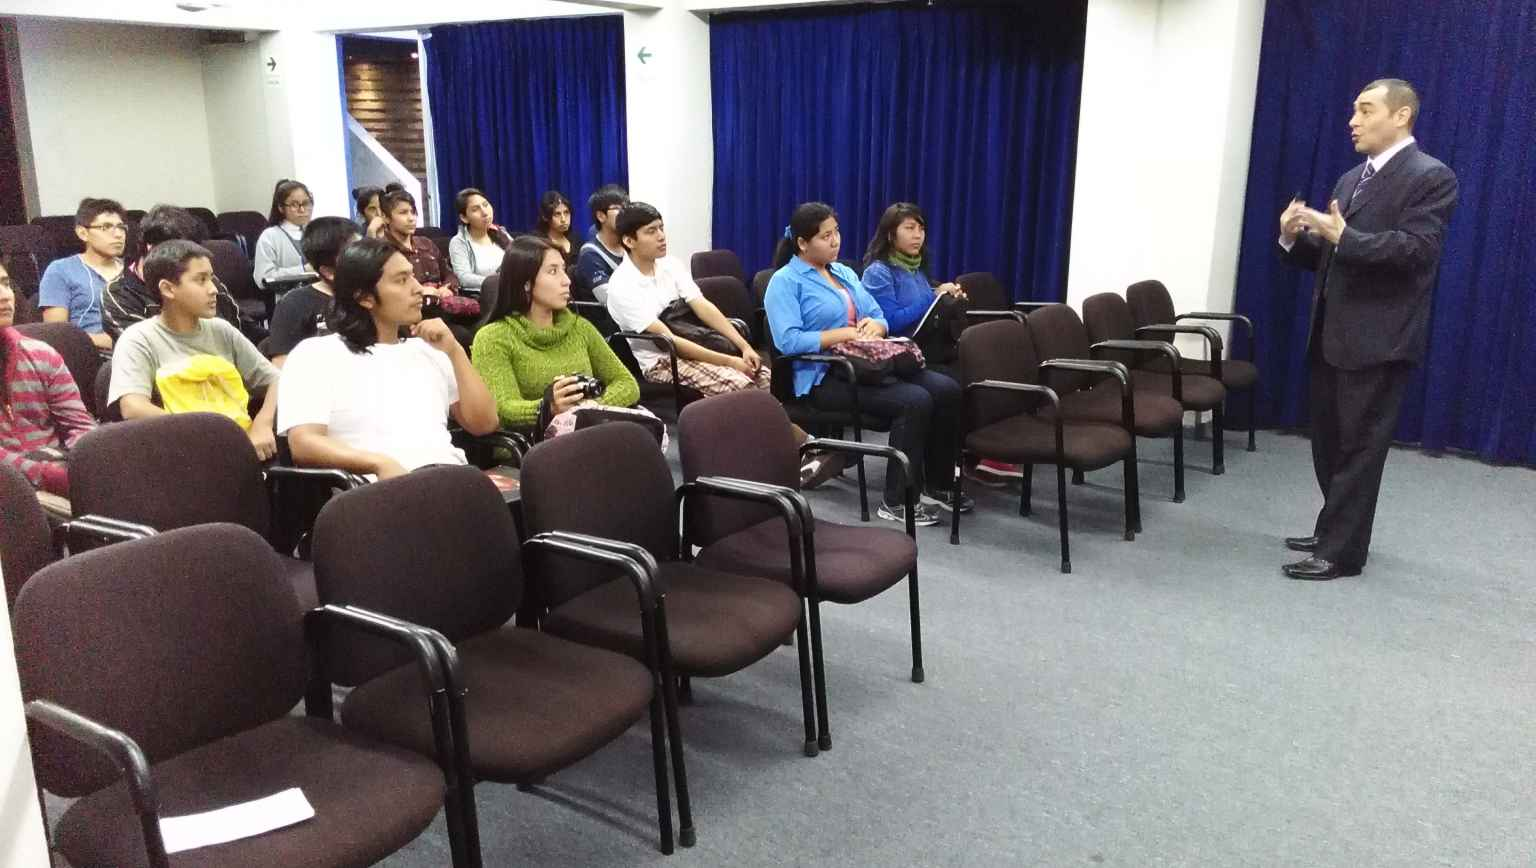 Outreach at Universidad Nacional Jorge Basadre